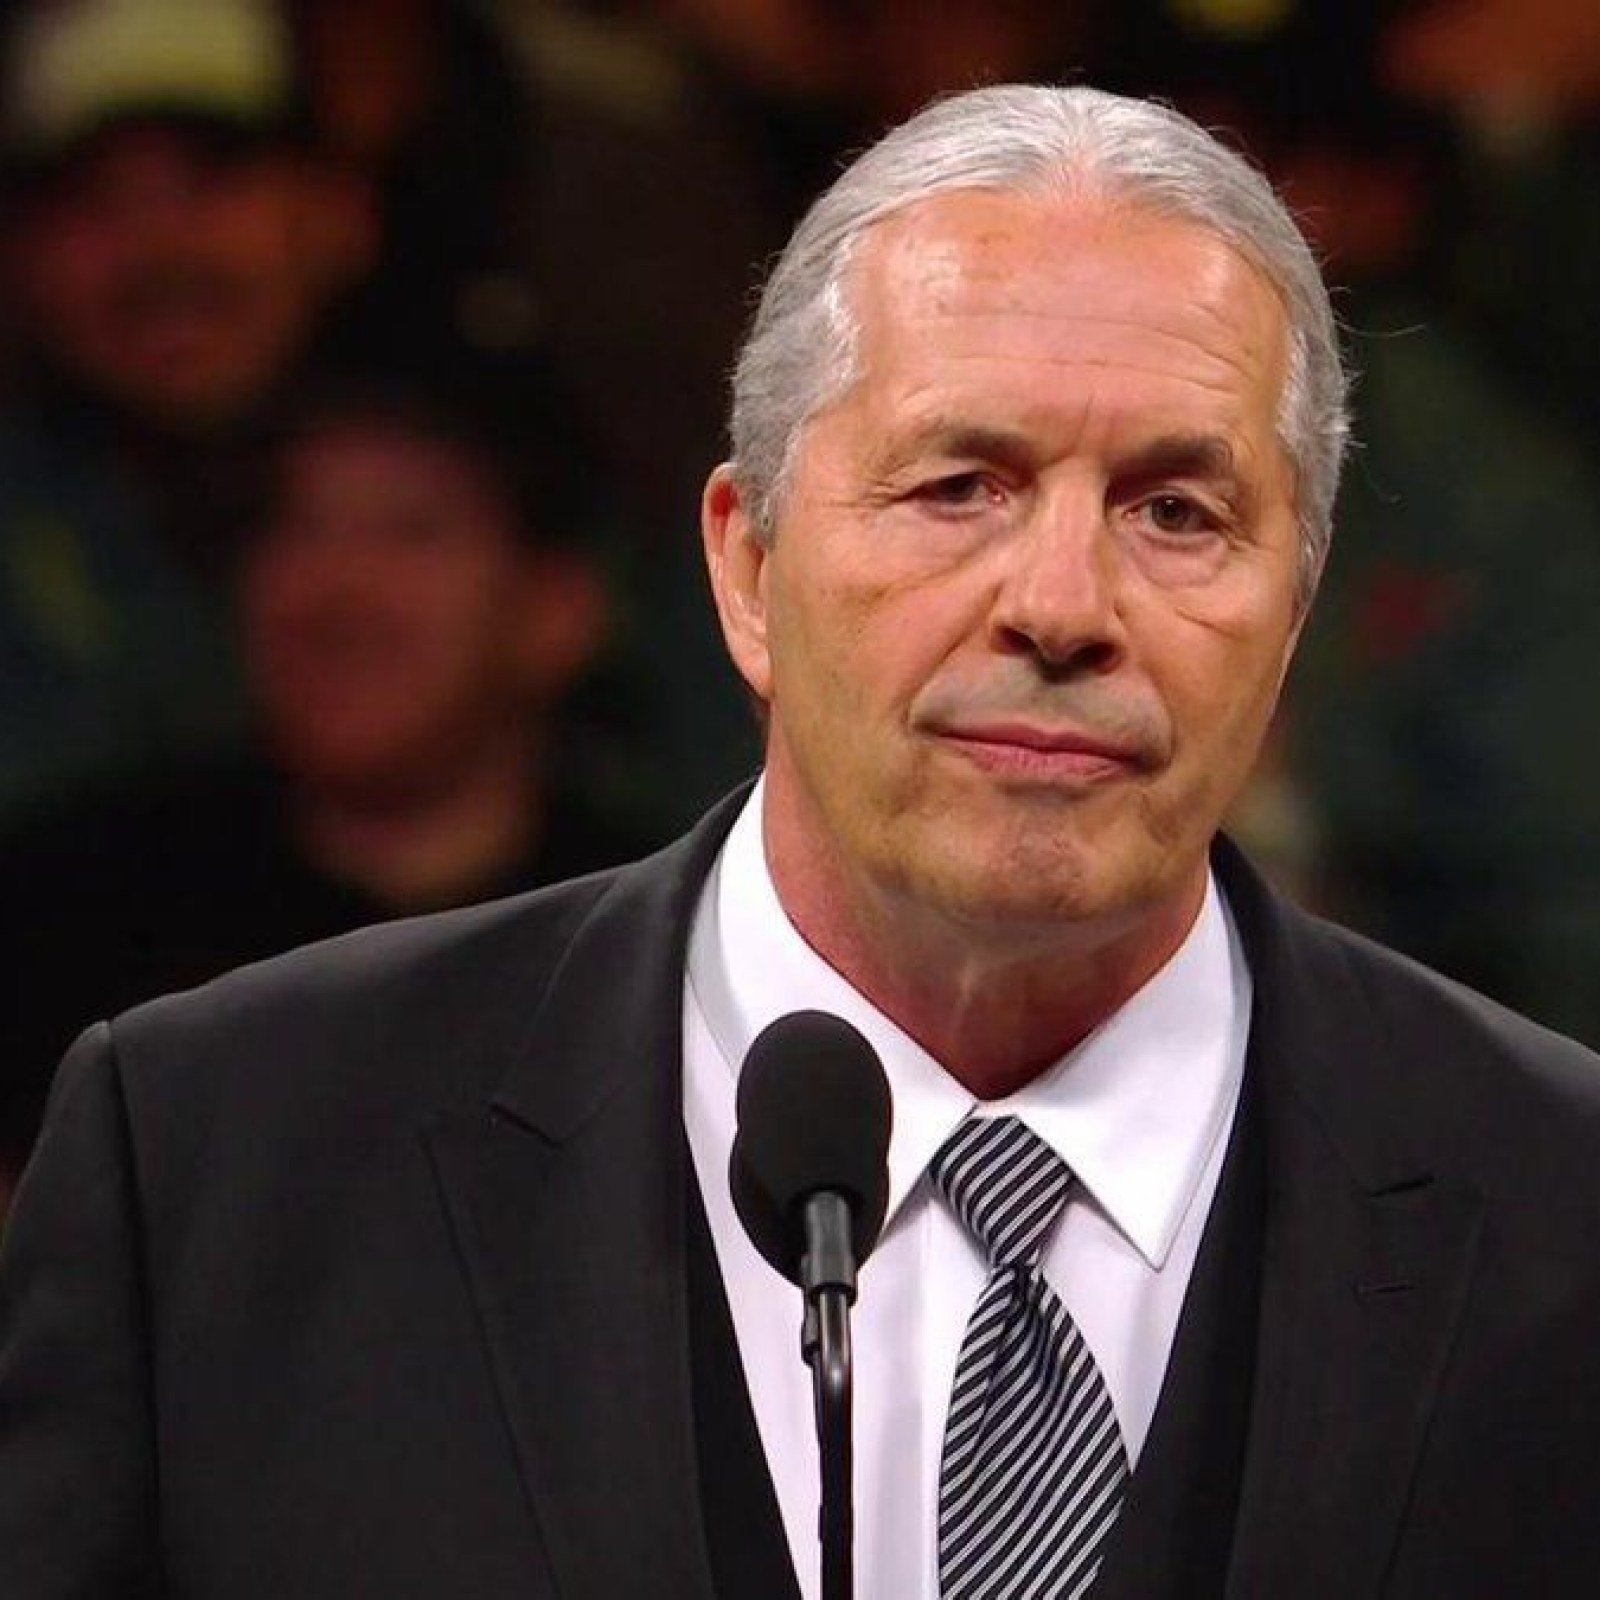 Bret The Hitman Hart Attacked At The Wwe Hall Of Fame